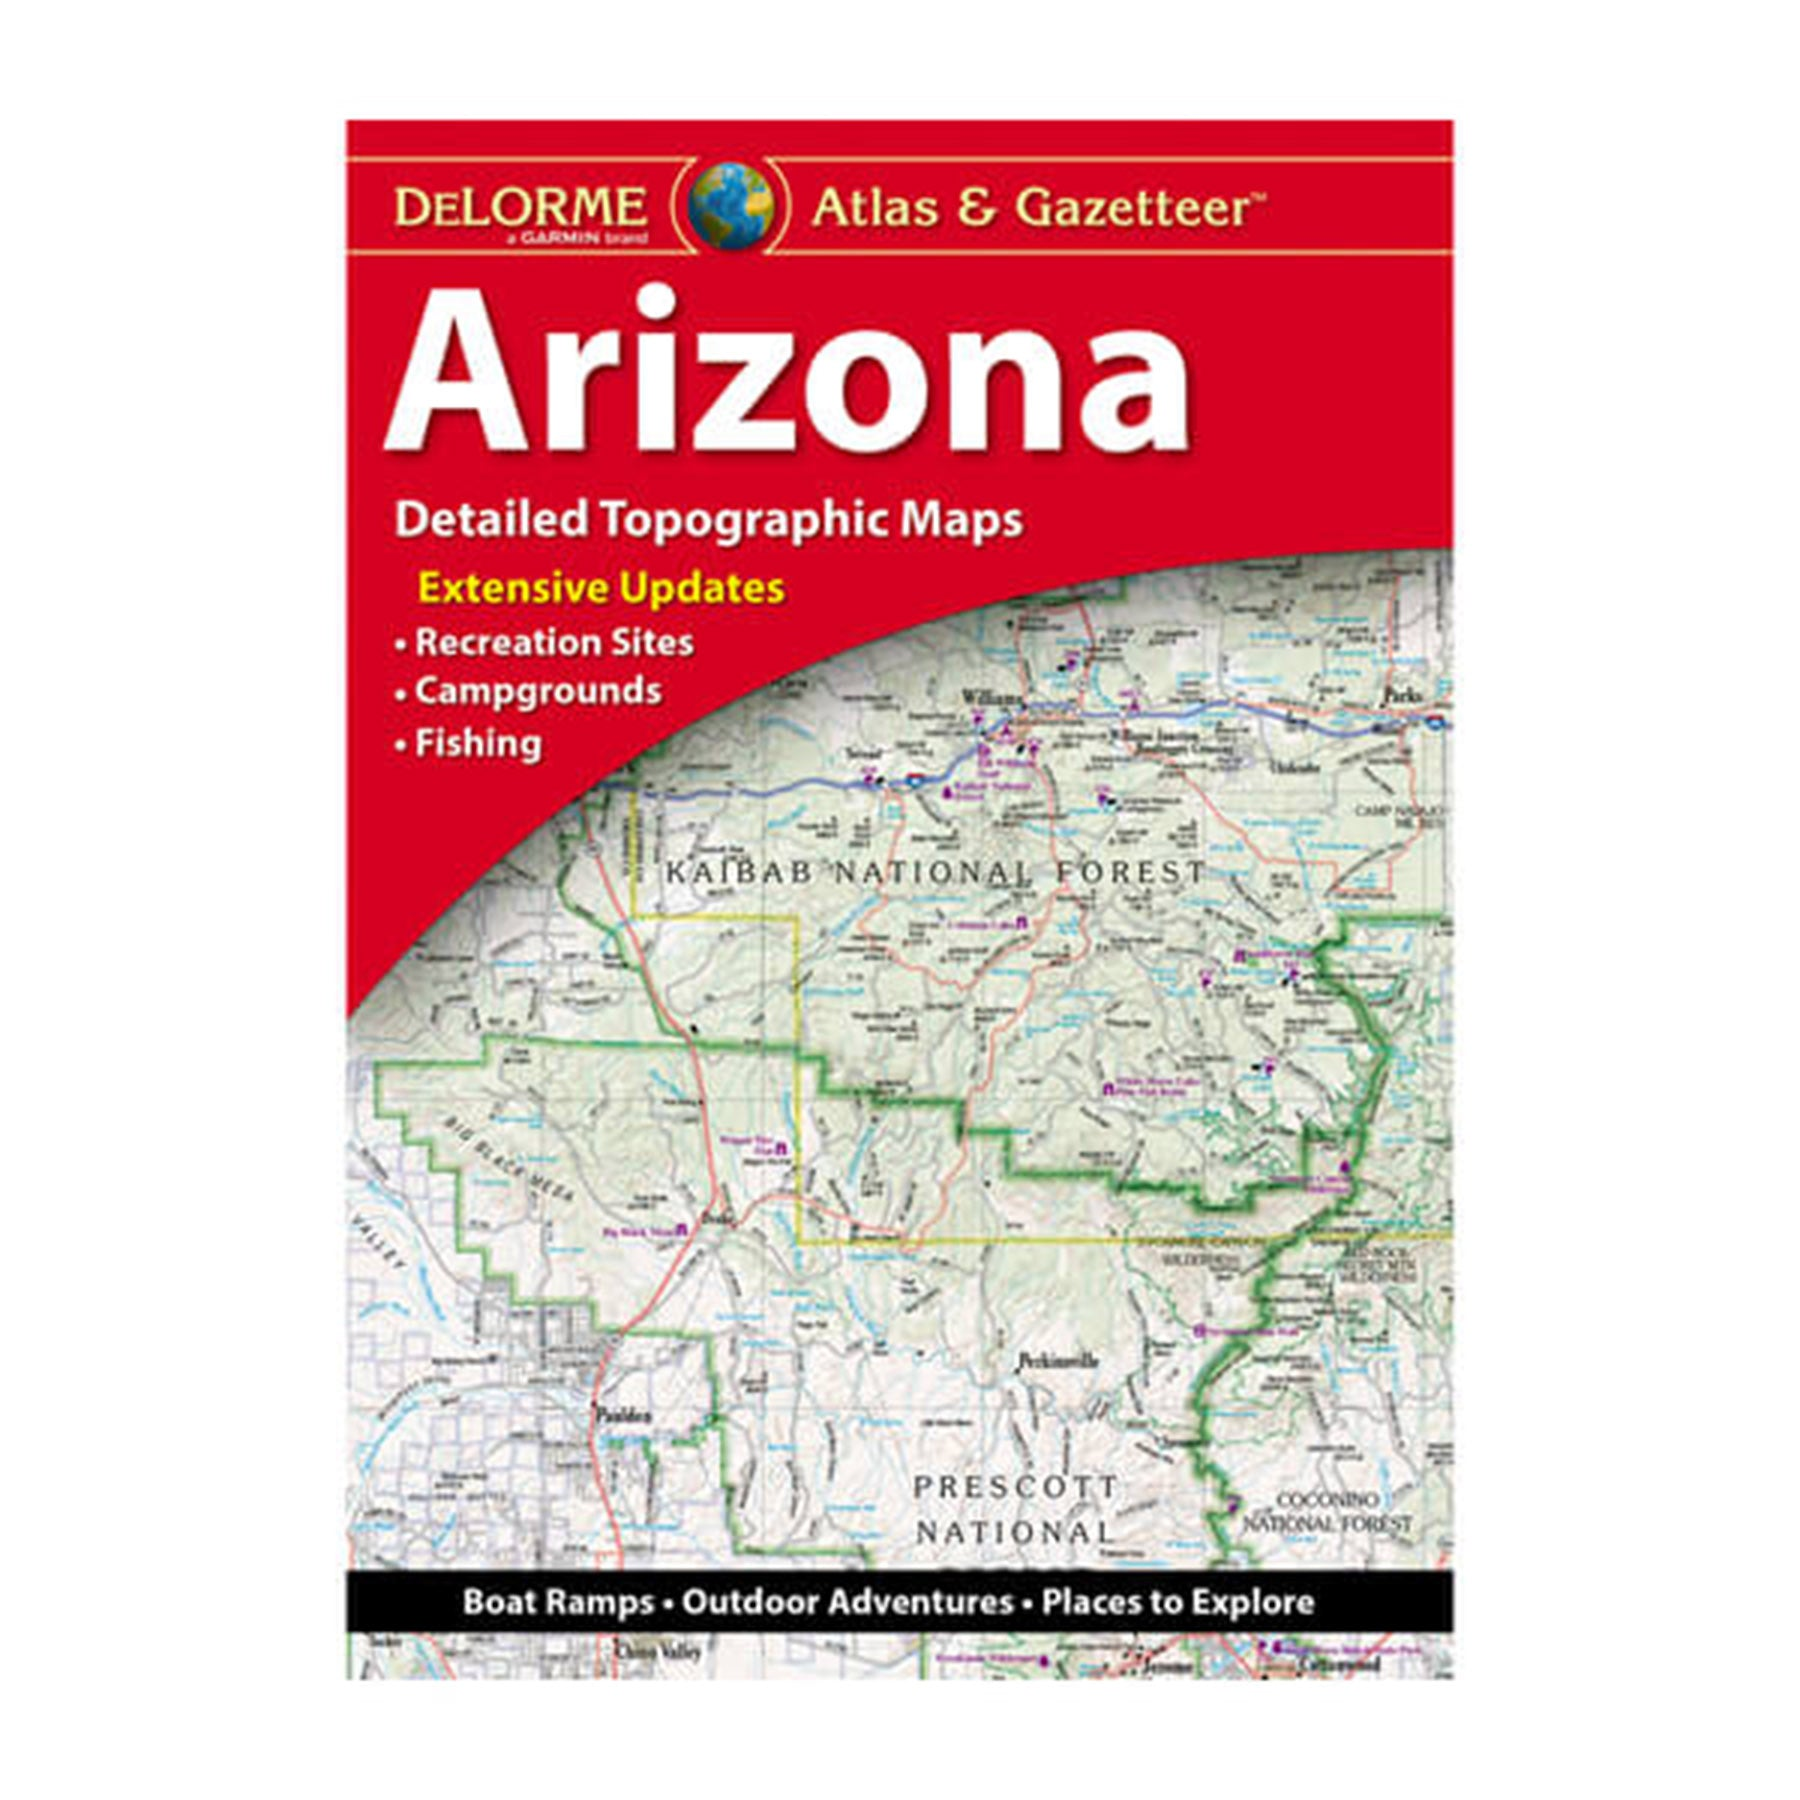 The cover of the Arizona Delorme atlas